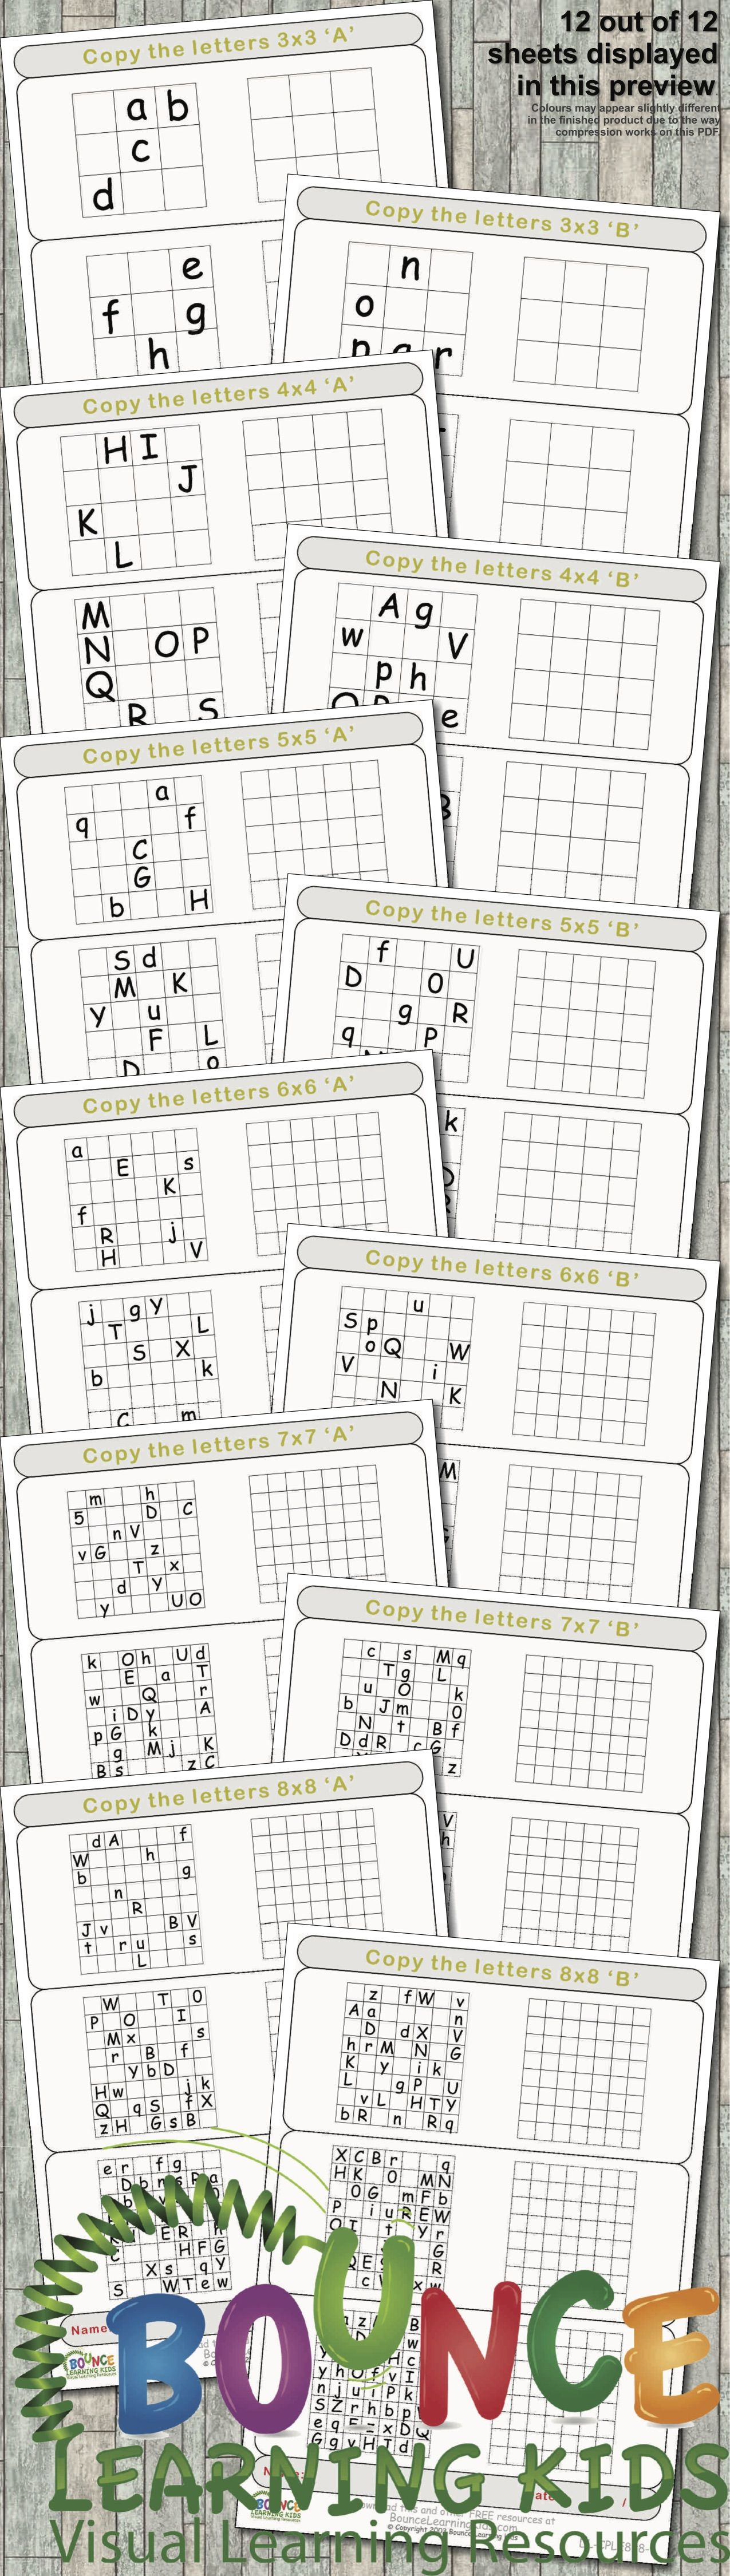 Copy Letters 12 Hand Eye Coordination Sheets